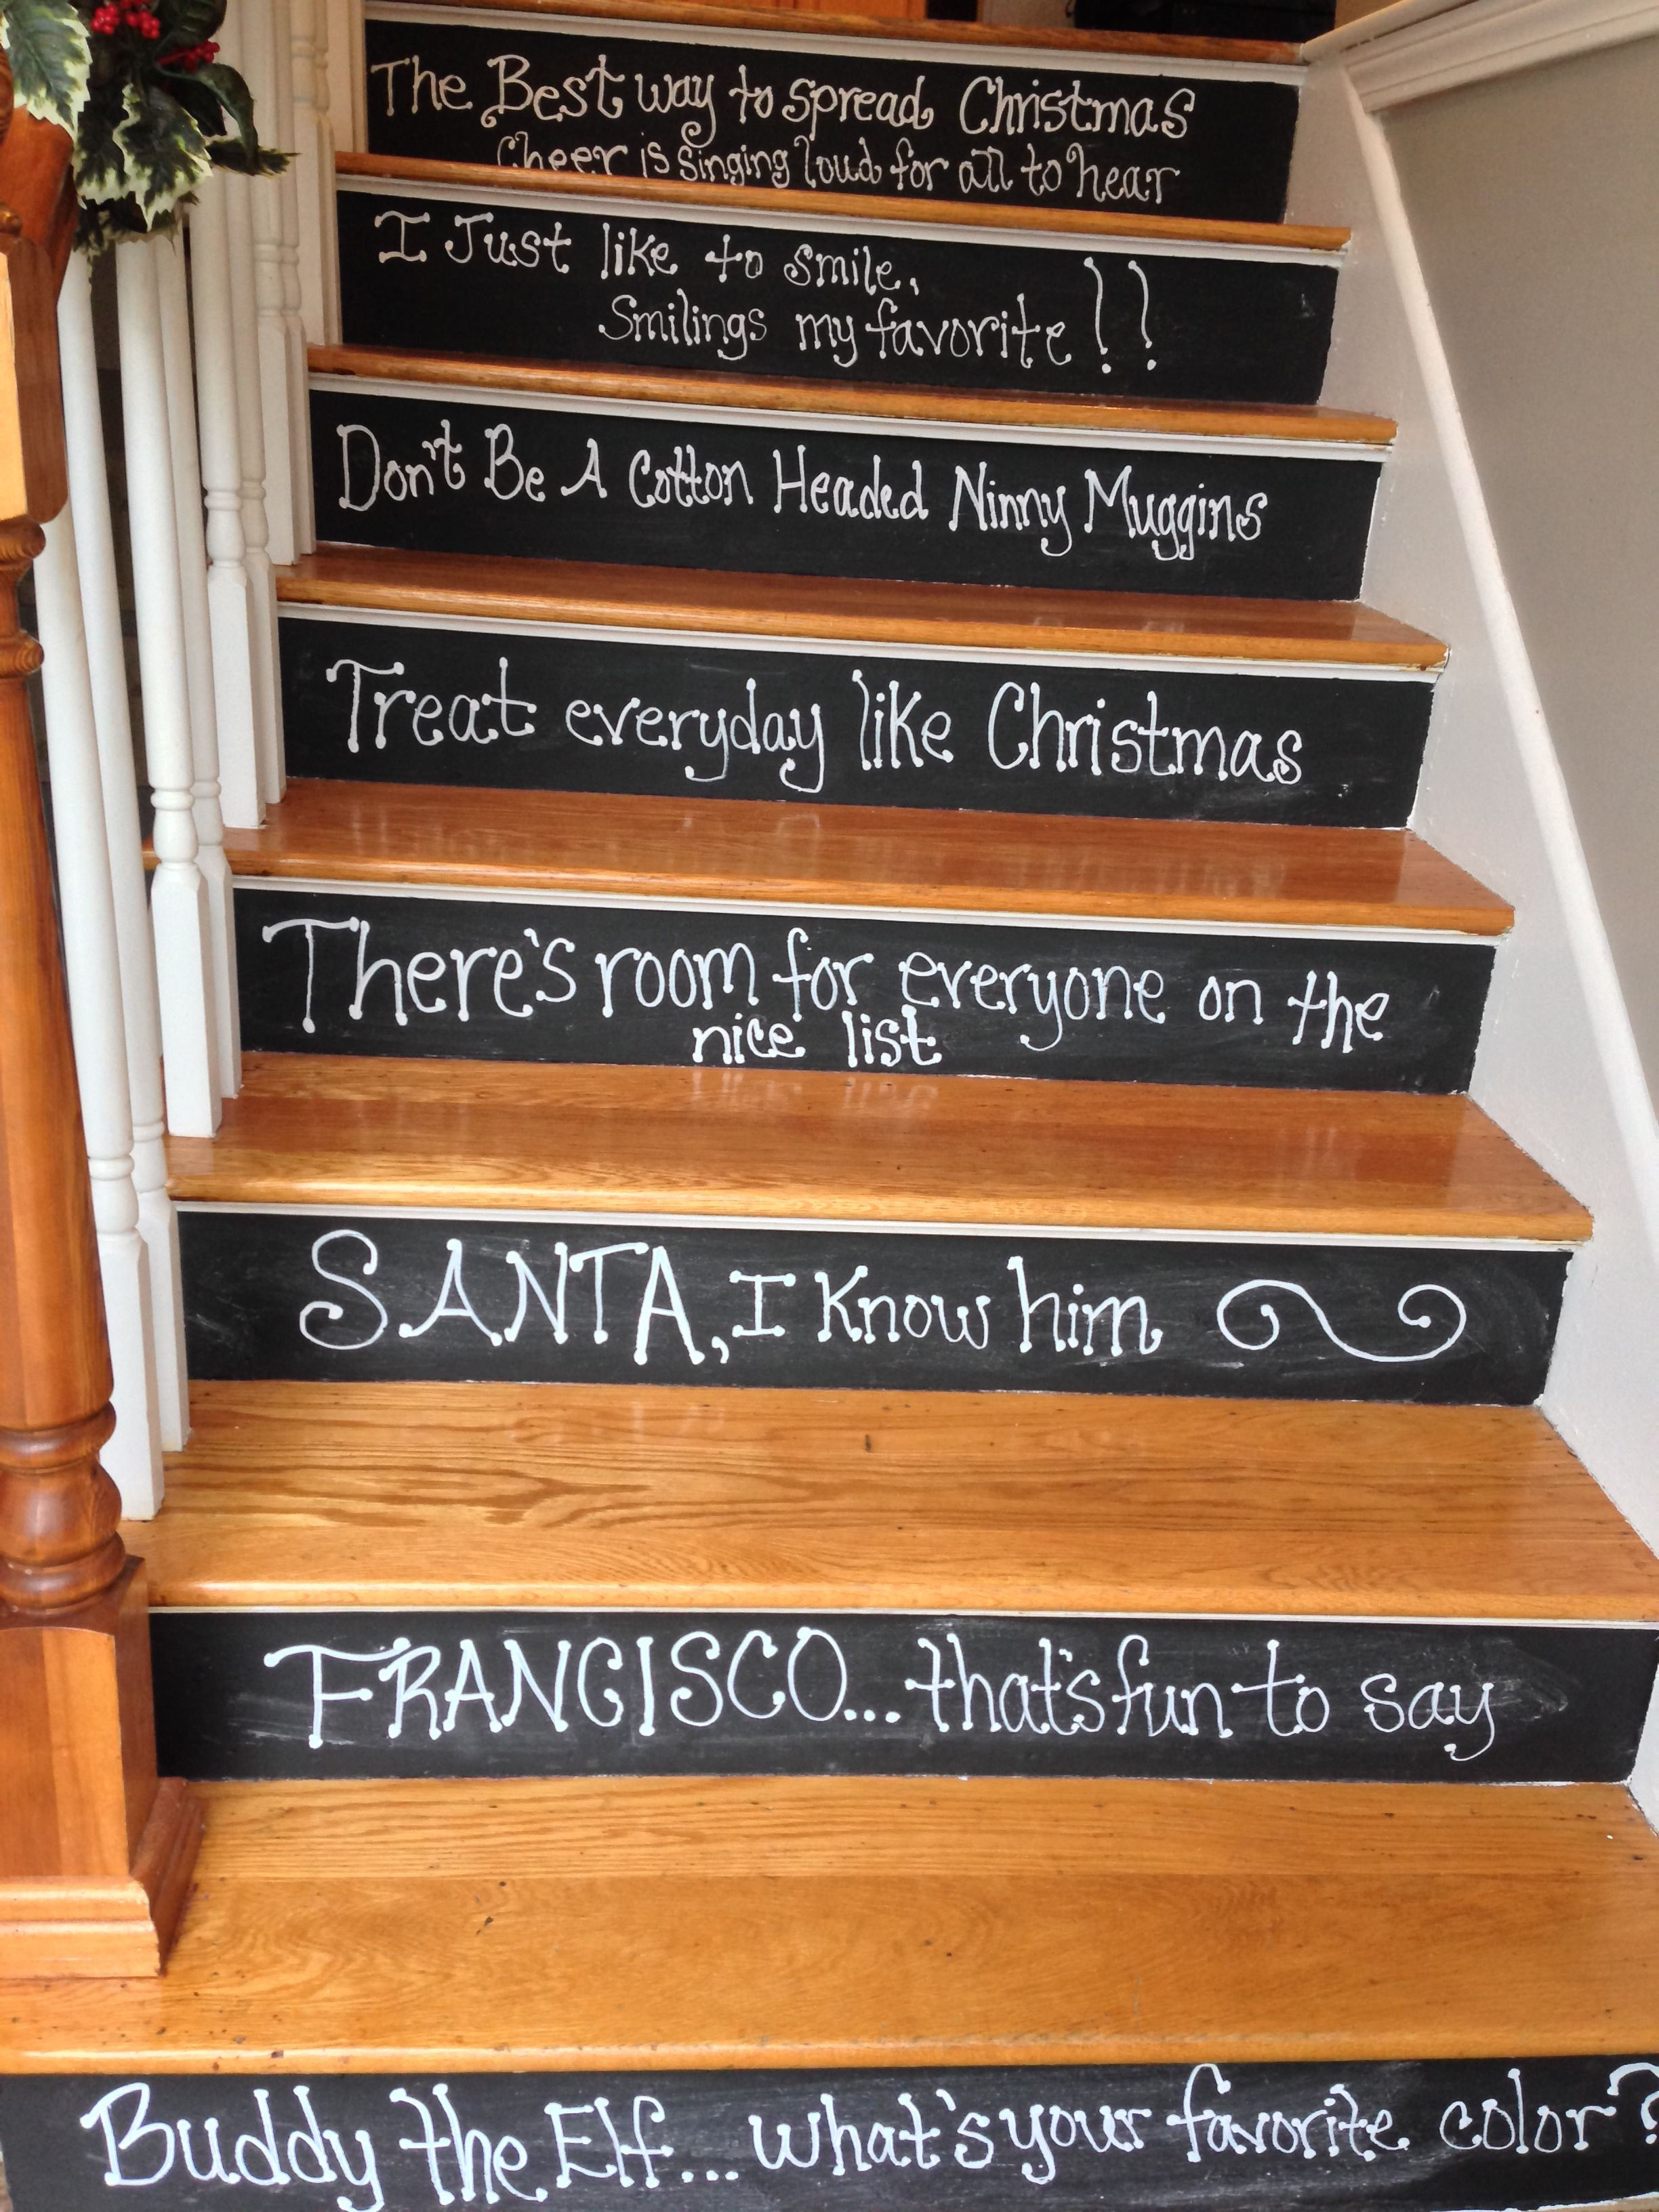 Elf quotes on chalkboard painted risers omg thats so crazy haha elfquotes